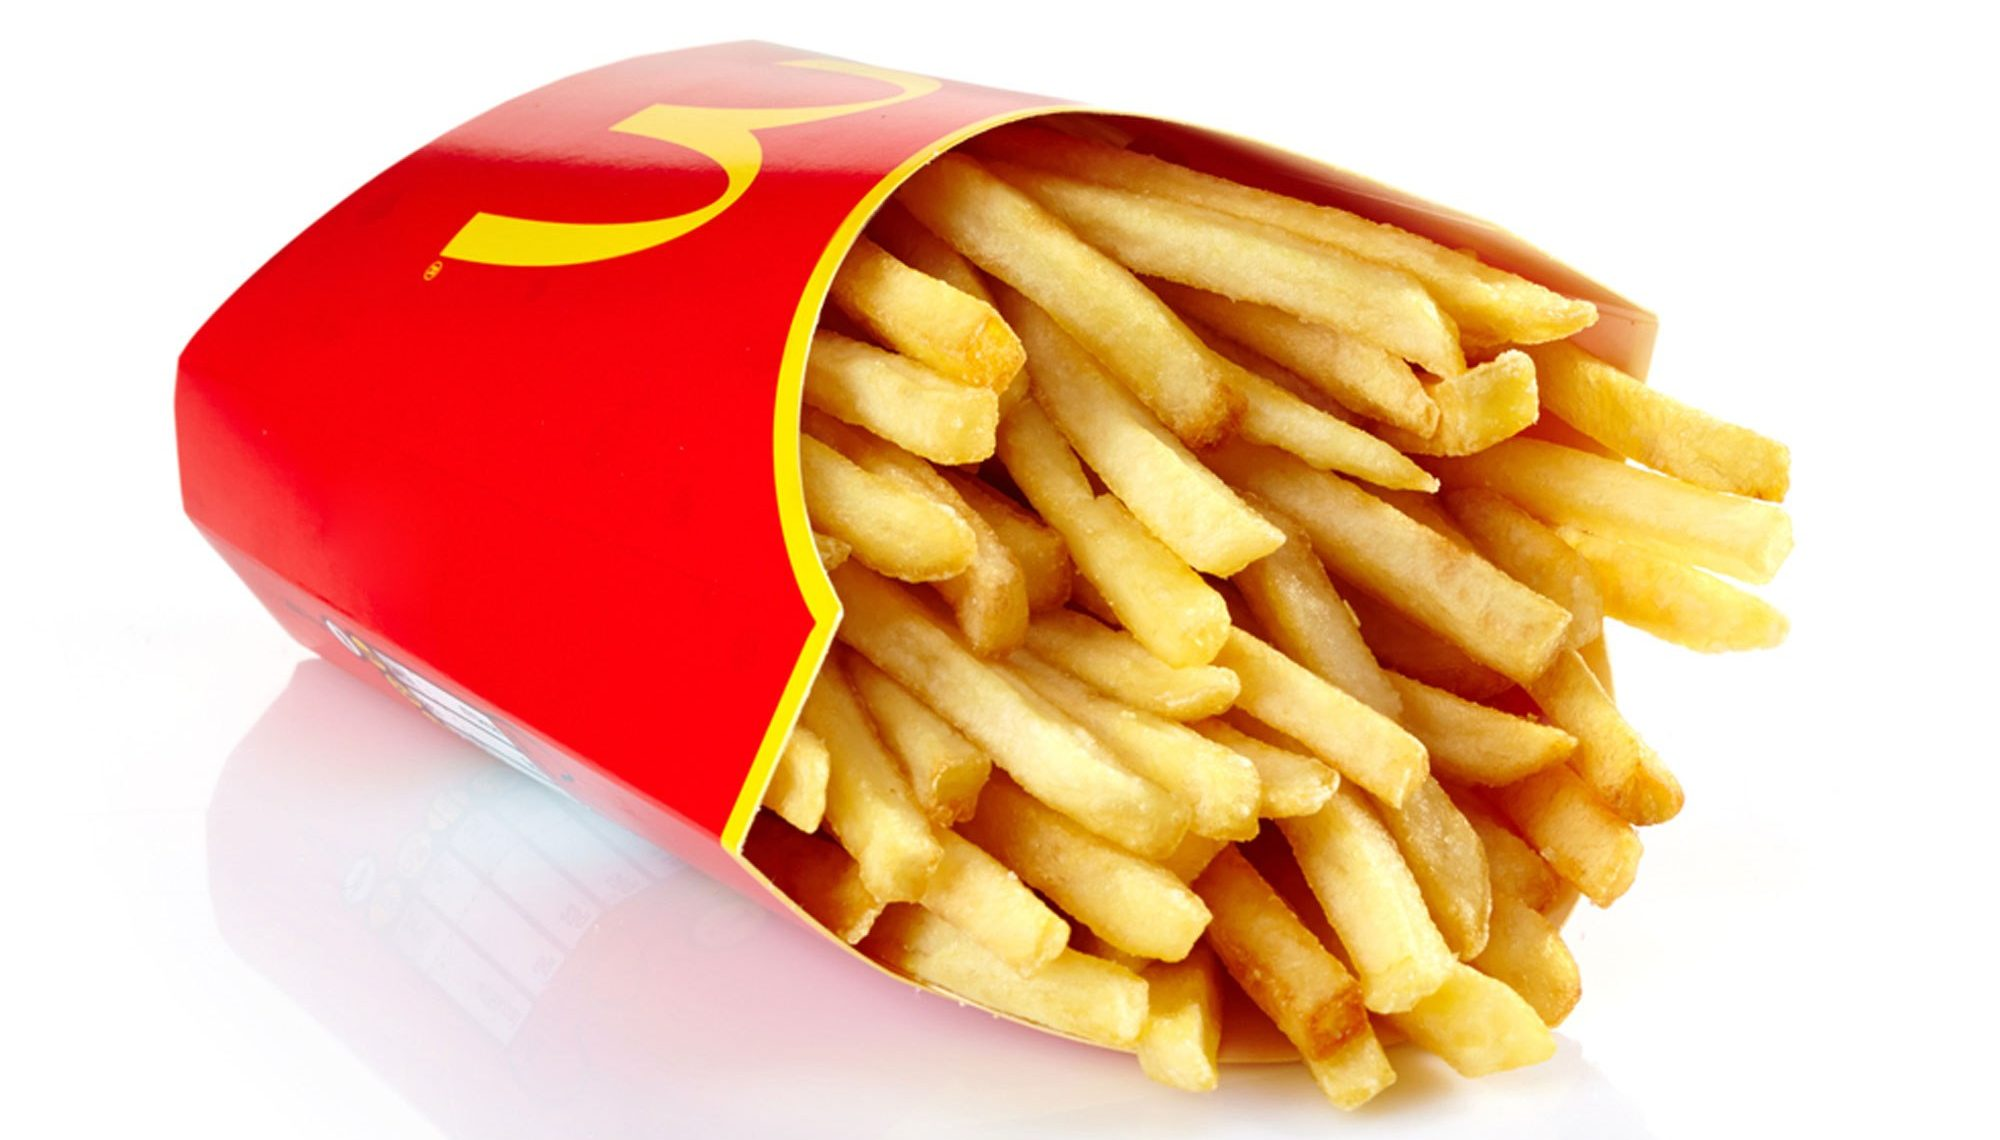 Unsalted McDonalds French fries